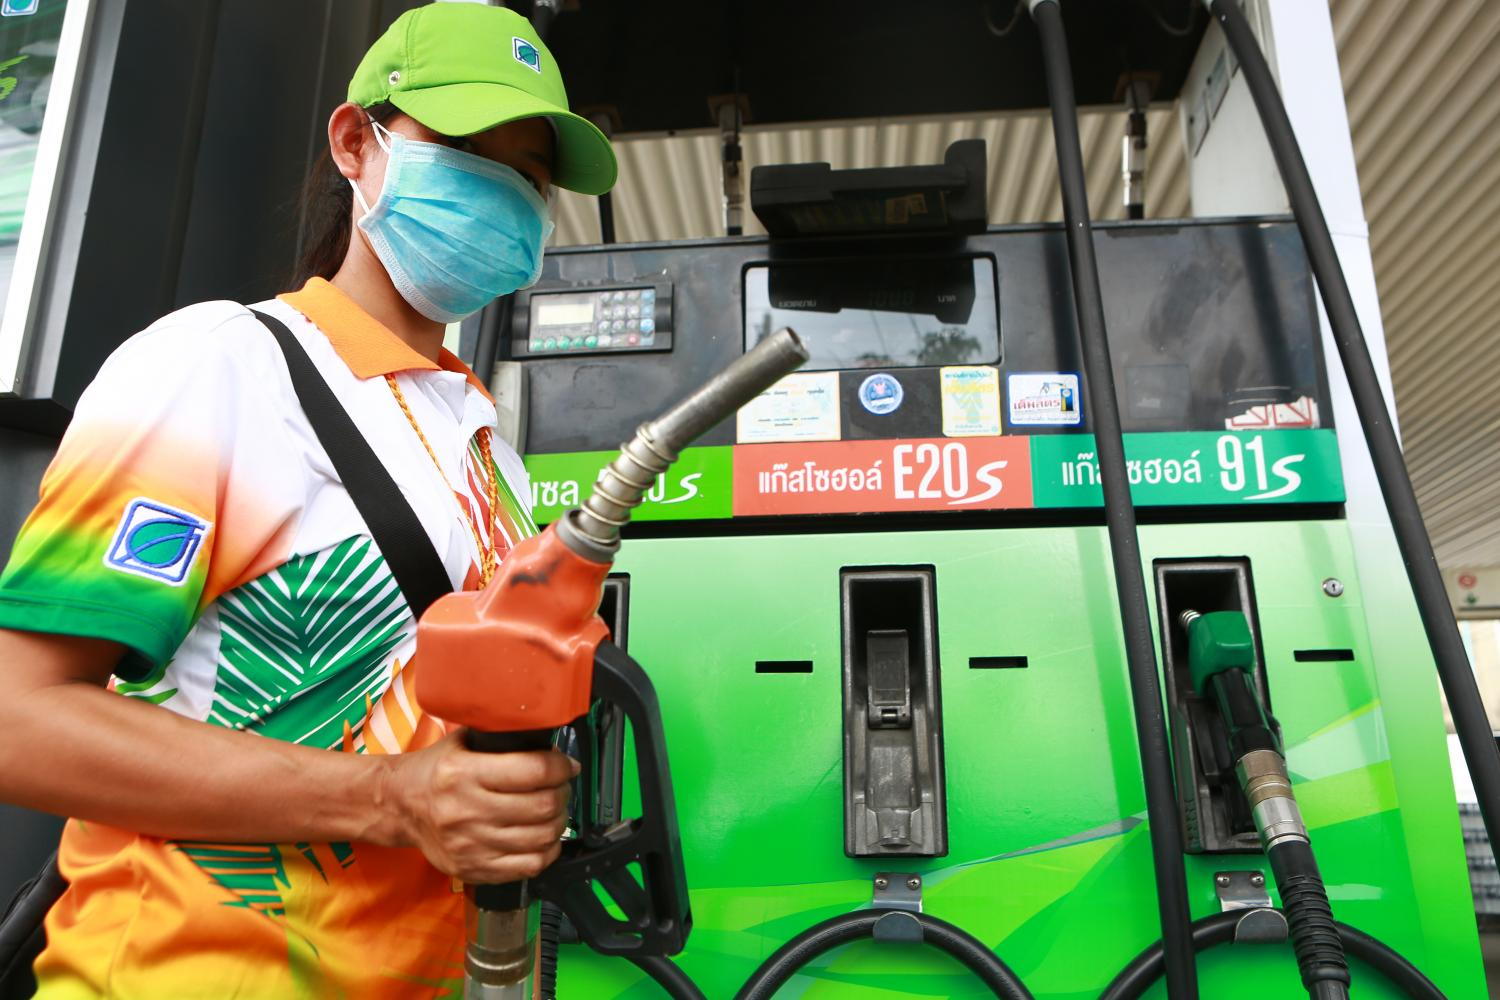 A worker wears a protective mask at a Bangchak petrol station. Officials want E20, a mix of 20% ethanol and 80% unleaded gasoline 95, to gradually replace gasohol 91.Somchai Poomlard